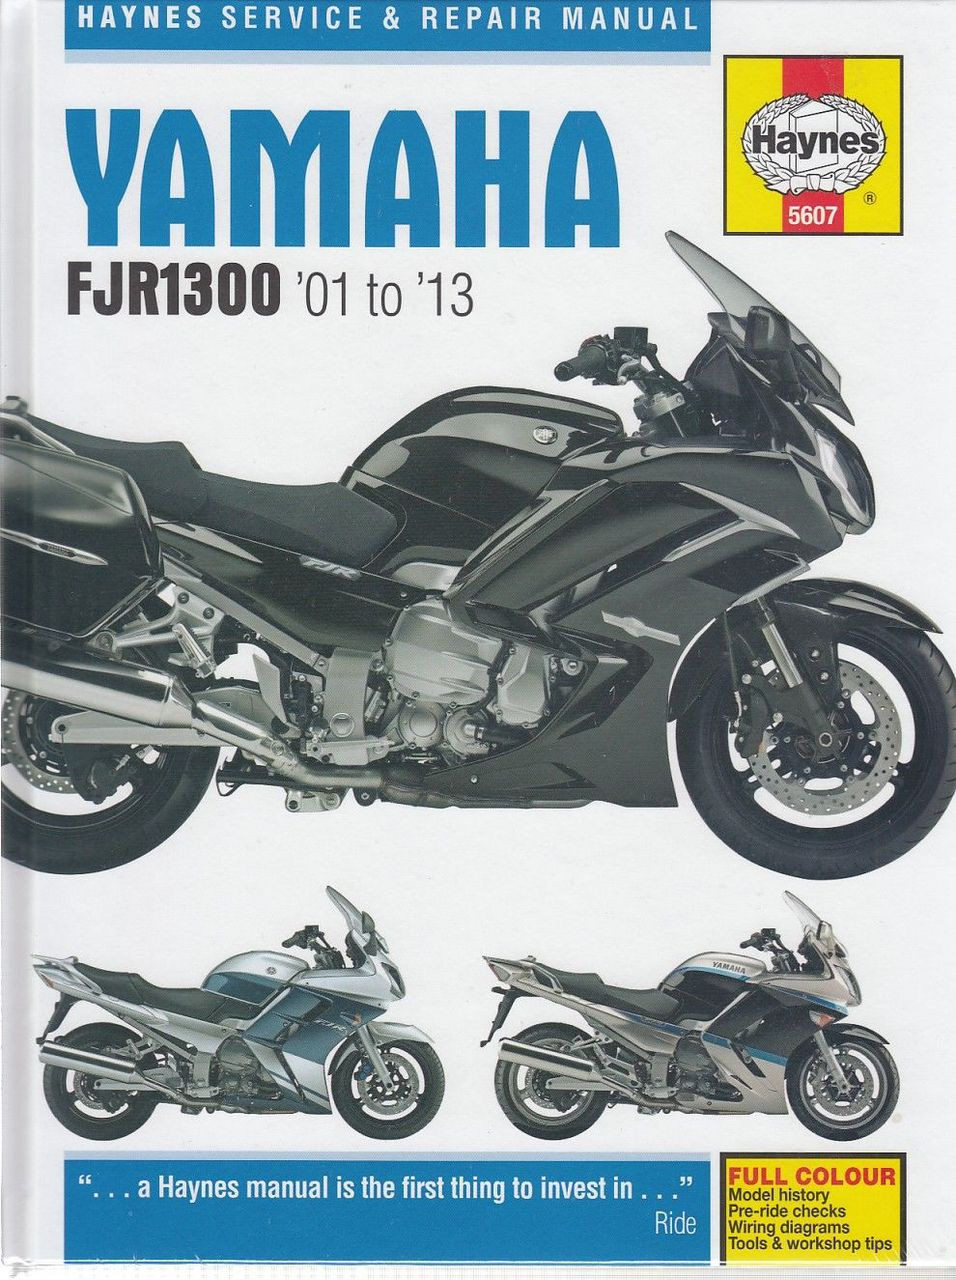 Yamaha Dt 175 Wiring Diagram Also Yamaha Dt 125 Wiring Diagram